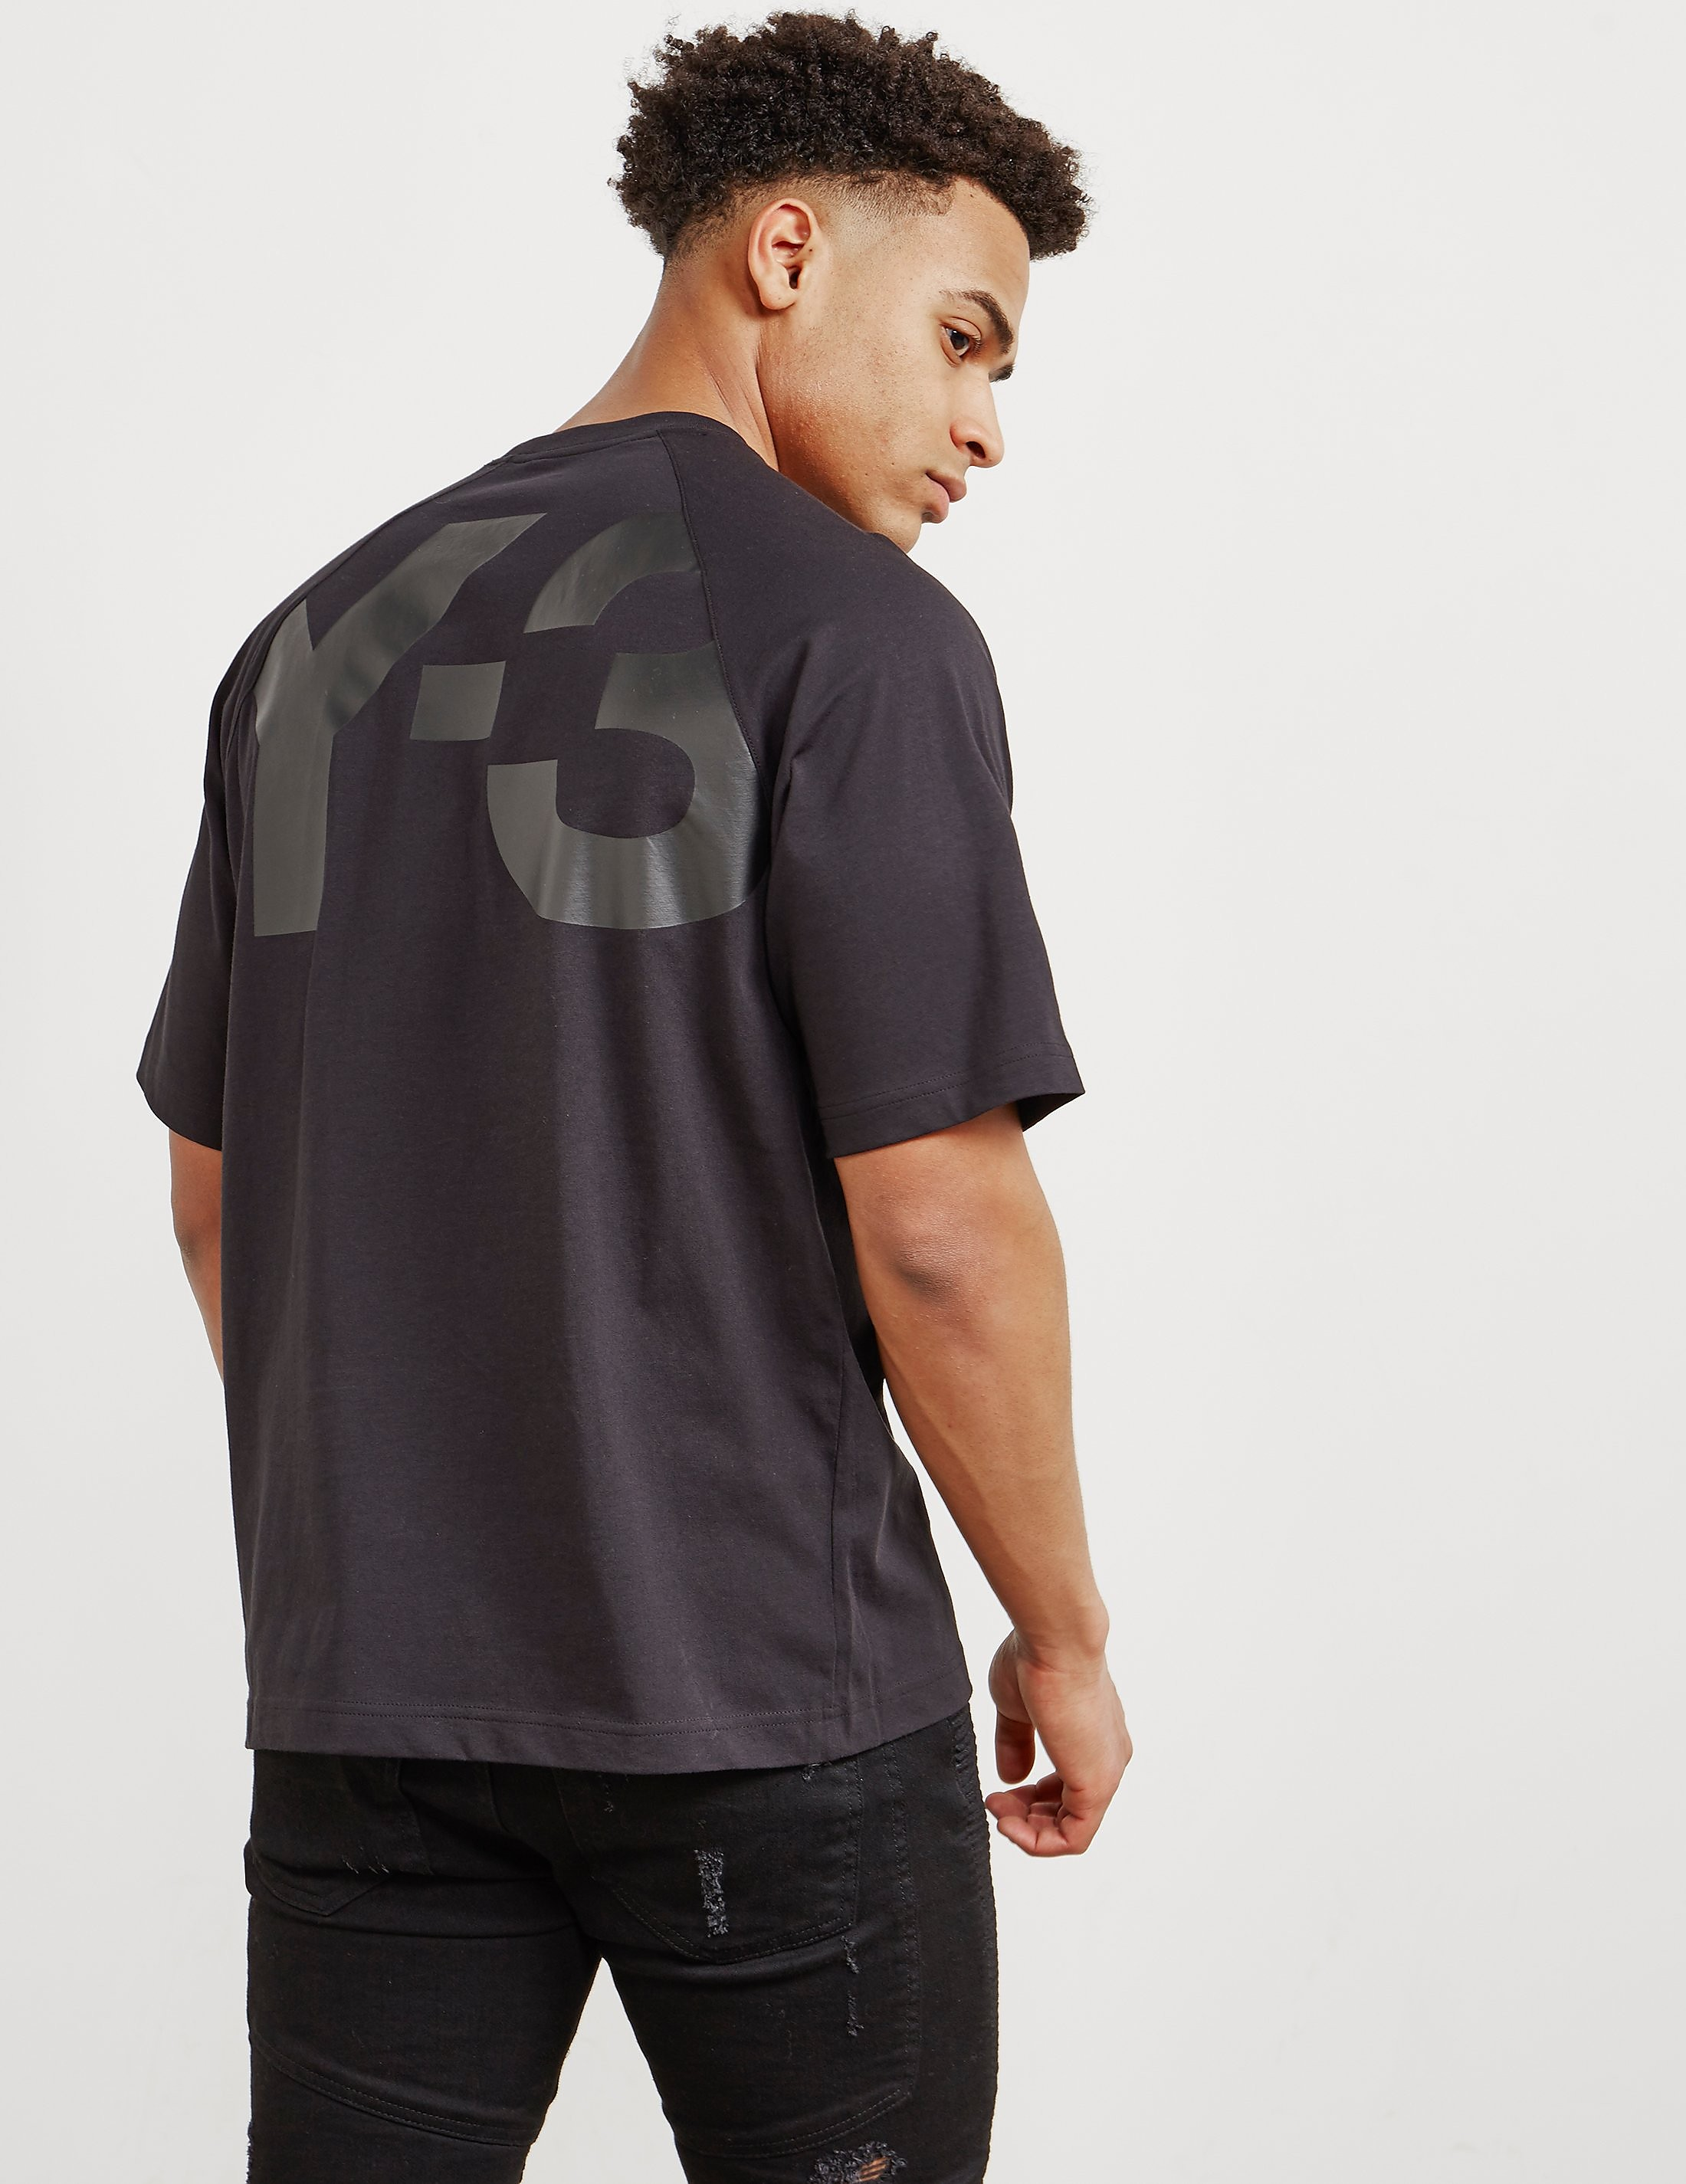 Y-3 Back Logo Short Sleeve T-Shirt